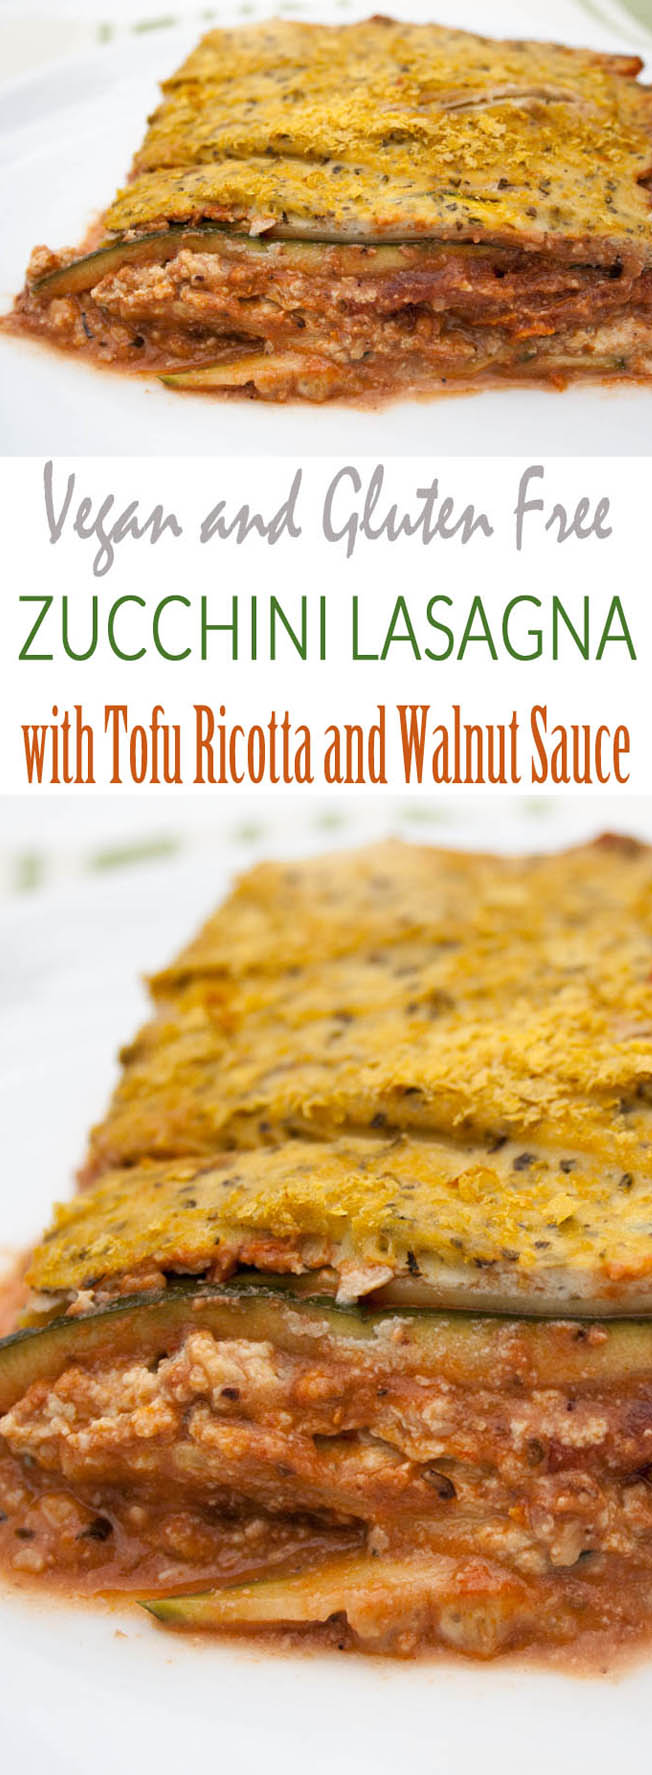 Vegan Zucchini Lasagna with Tofu Ricotta and Walnut Sauce collage photo with text.